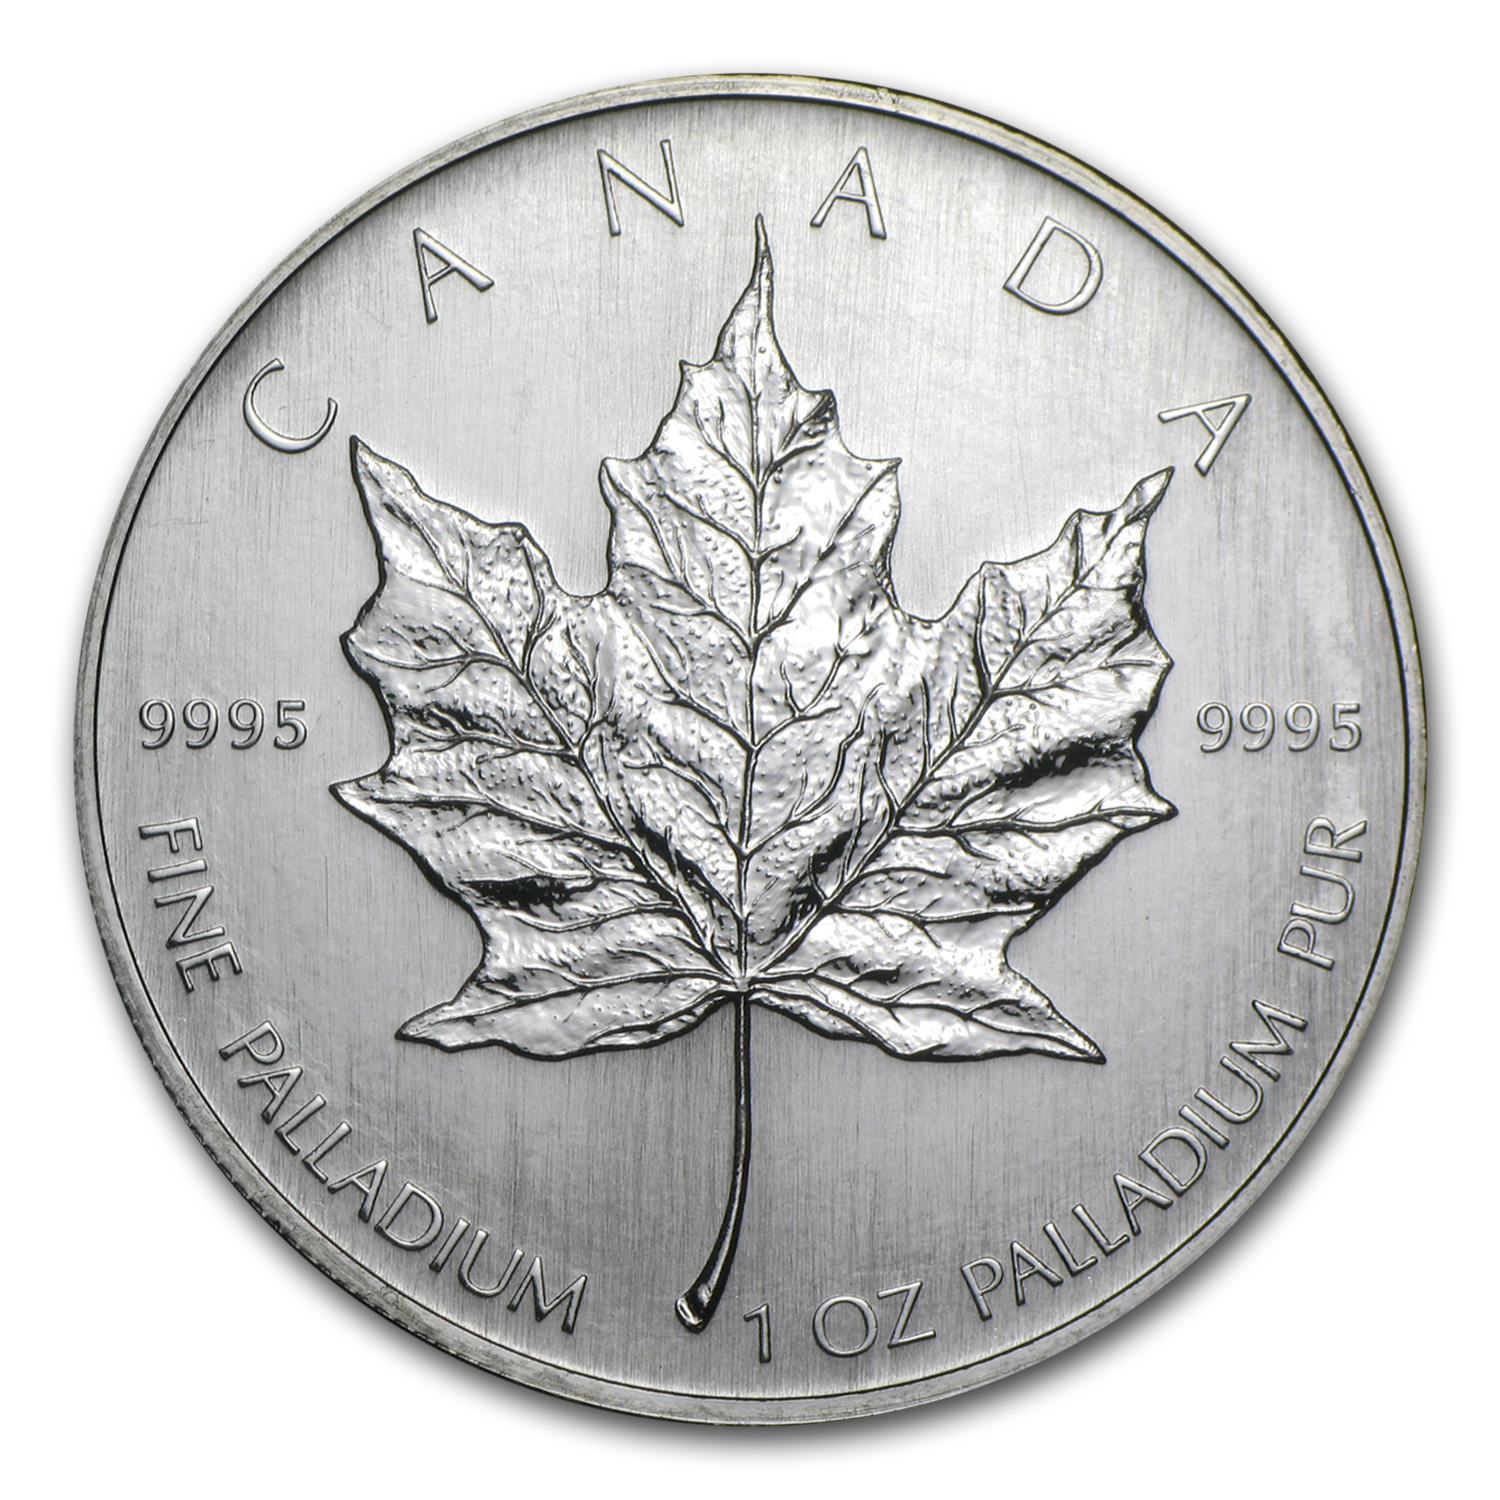 2006 1 oz Palladium Canadian Maple Leaf BU